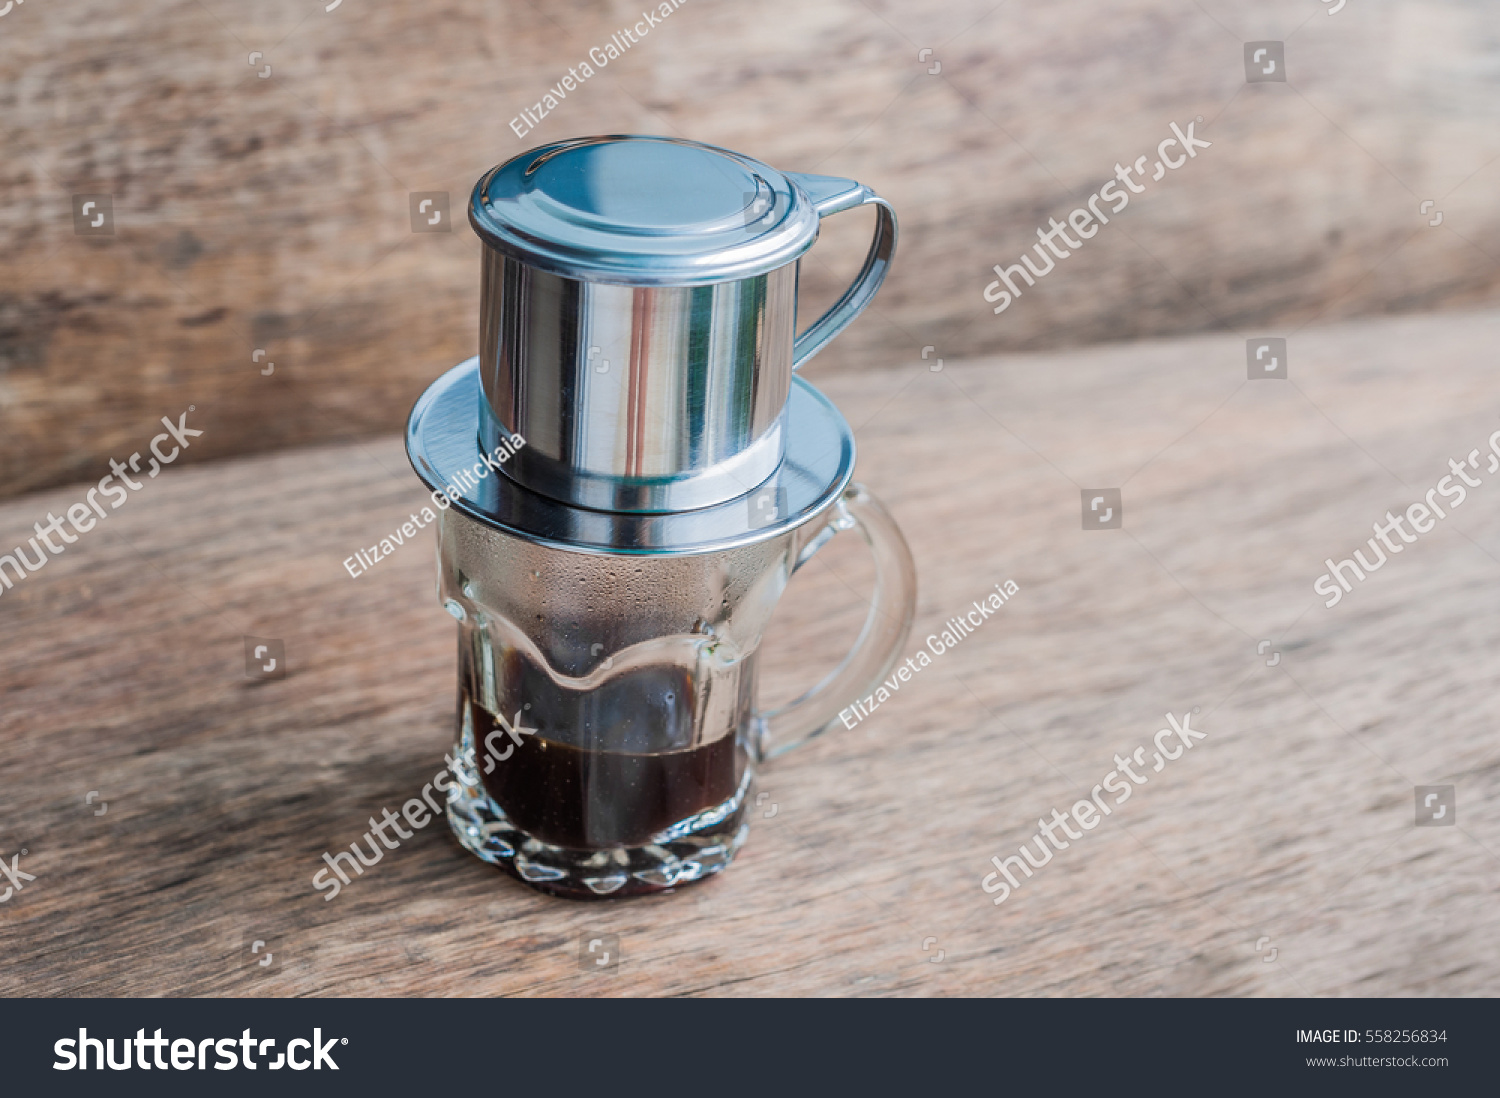 Pouring Hot Water Into Coffee Maker : Phin Traditional Vietnamese Coffee Maker Place Stock Photo ...